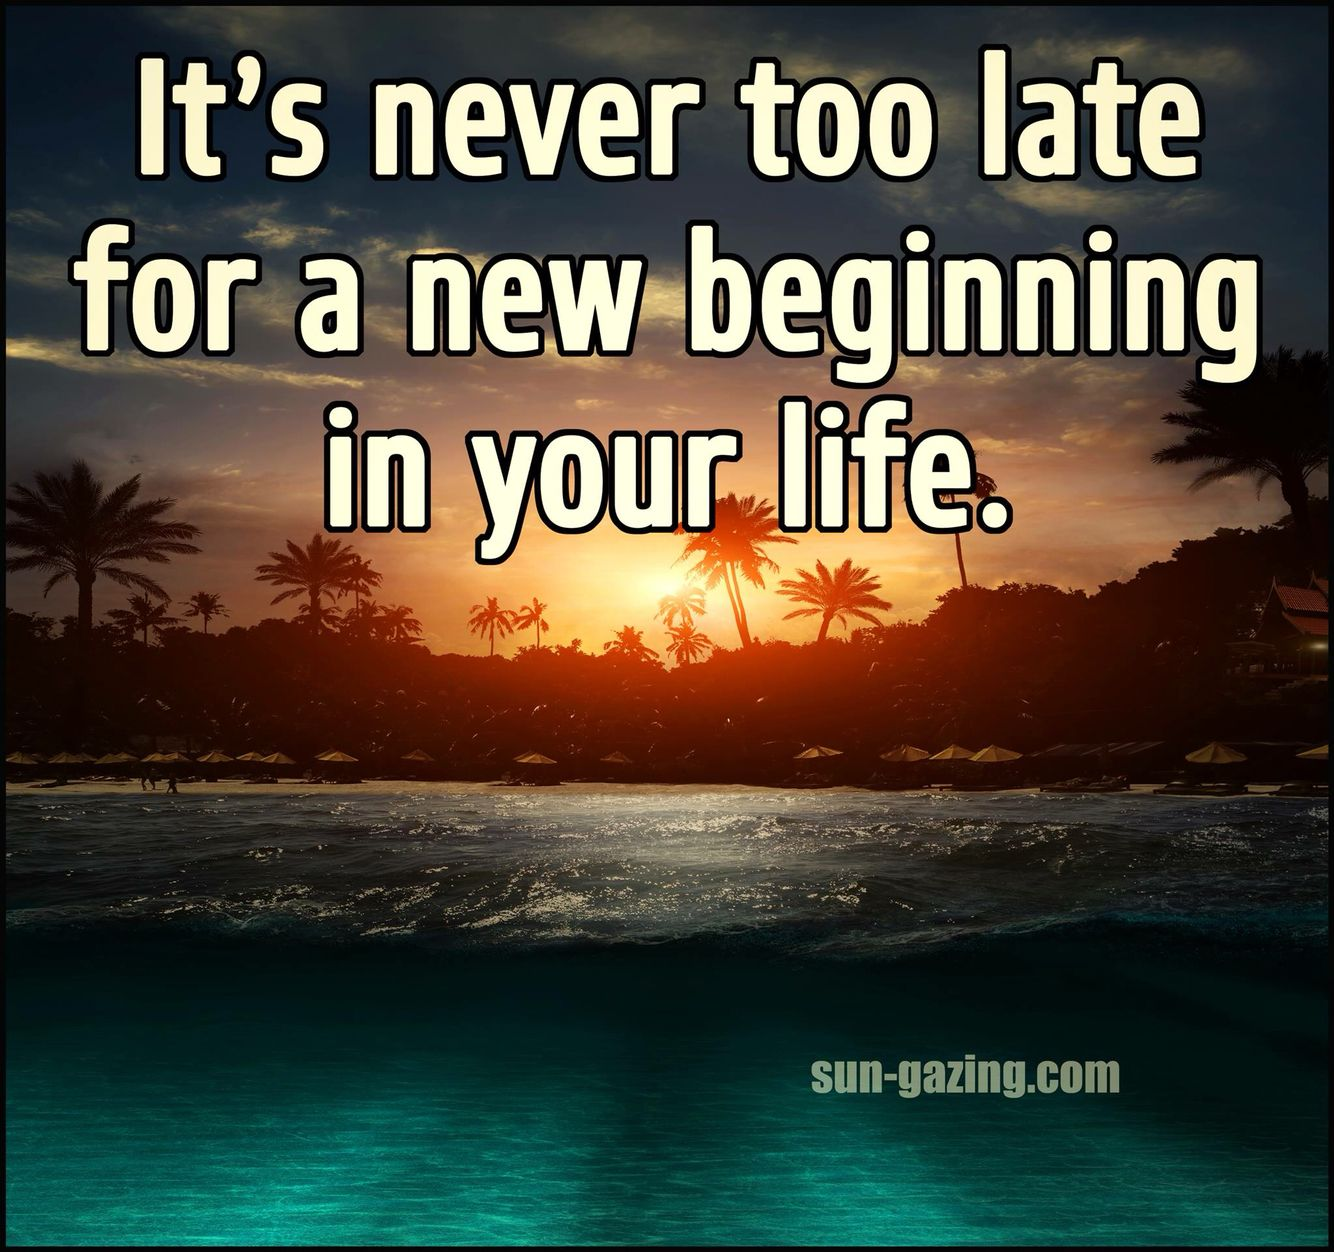 Quotes About New Life: As Long As You Are Alive, You Have Time For A New